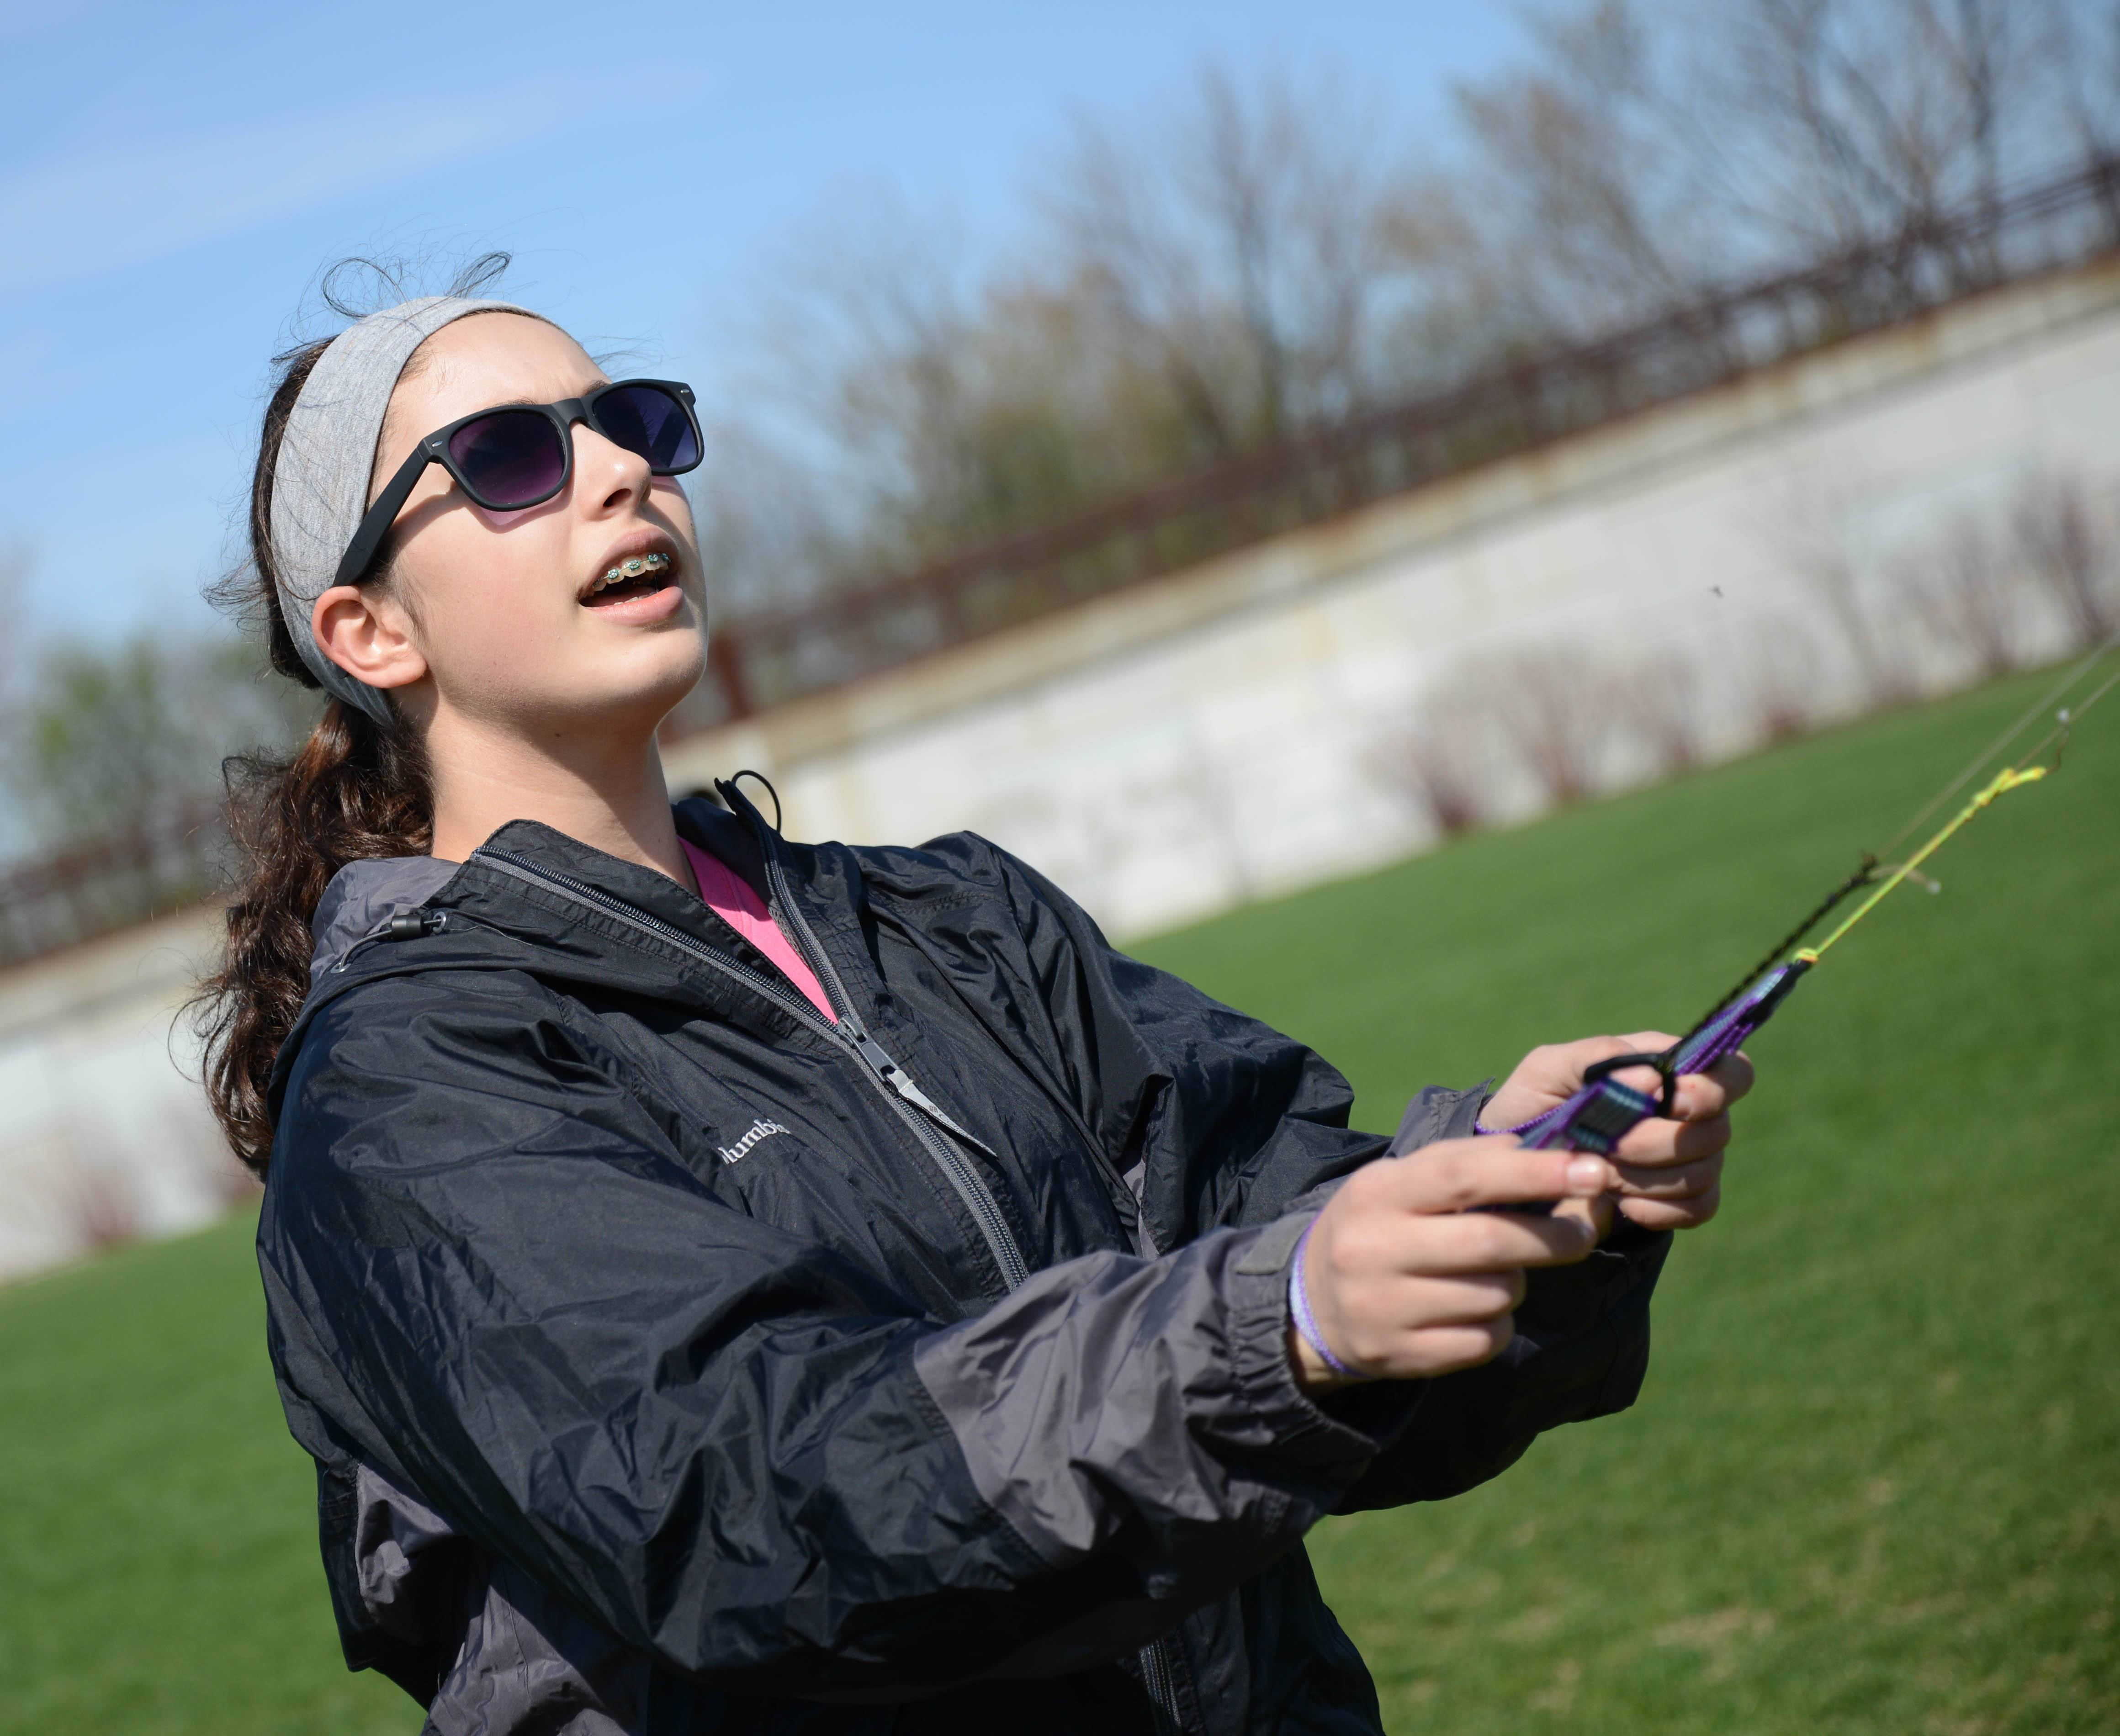 Elizabeth Gordon of Oak Lawn showed off some kite tricks Saturday at Wheaton's Graf Park.